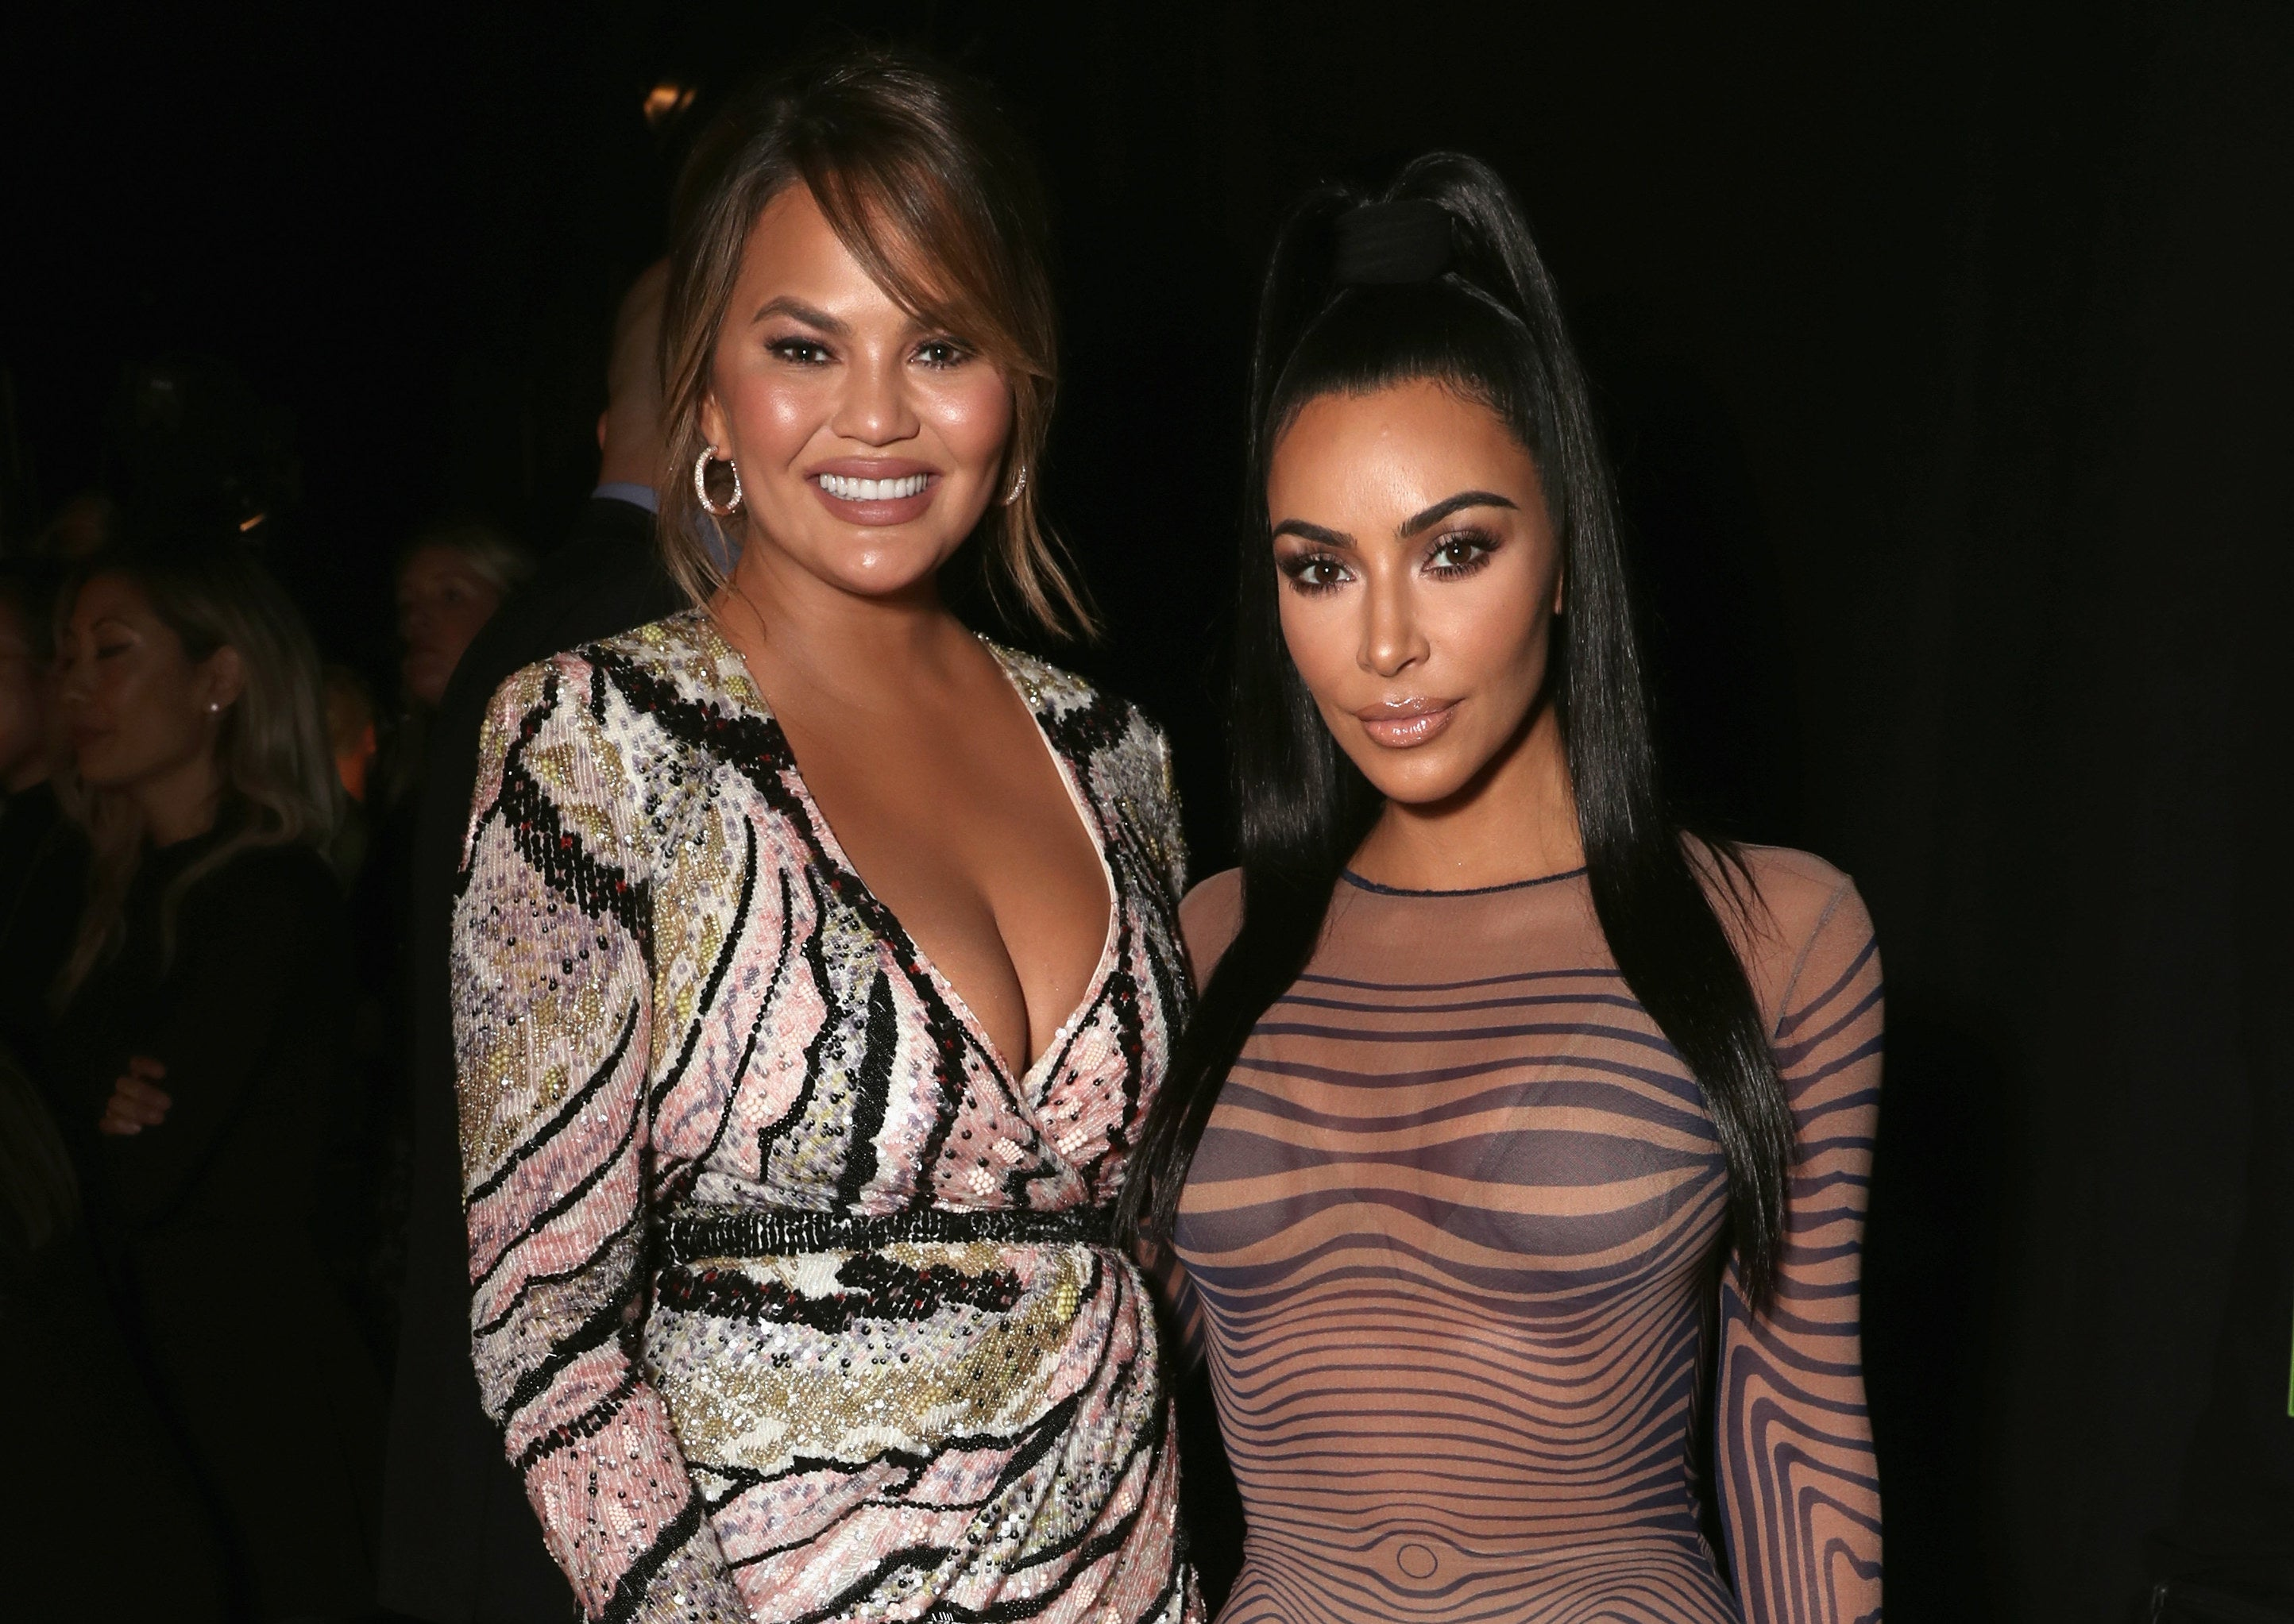 Chrissy and Kim pose together